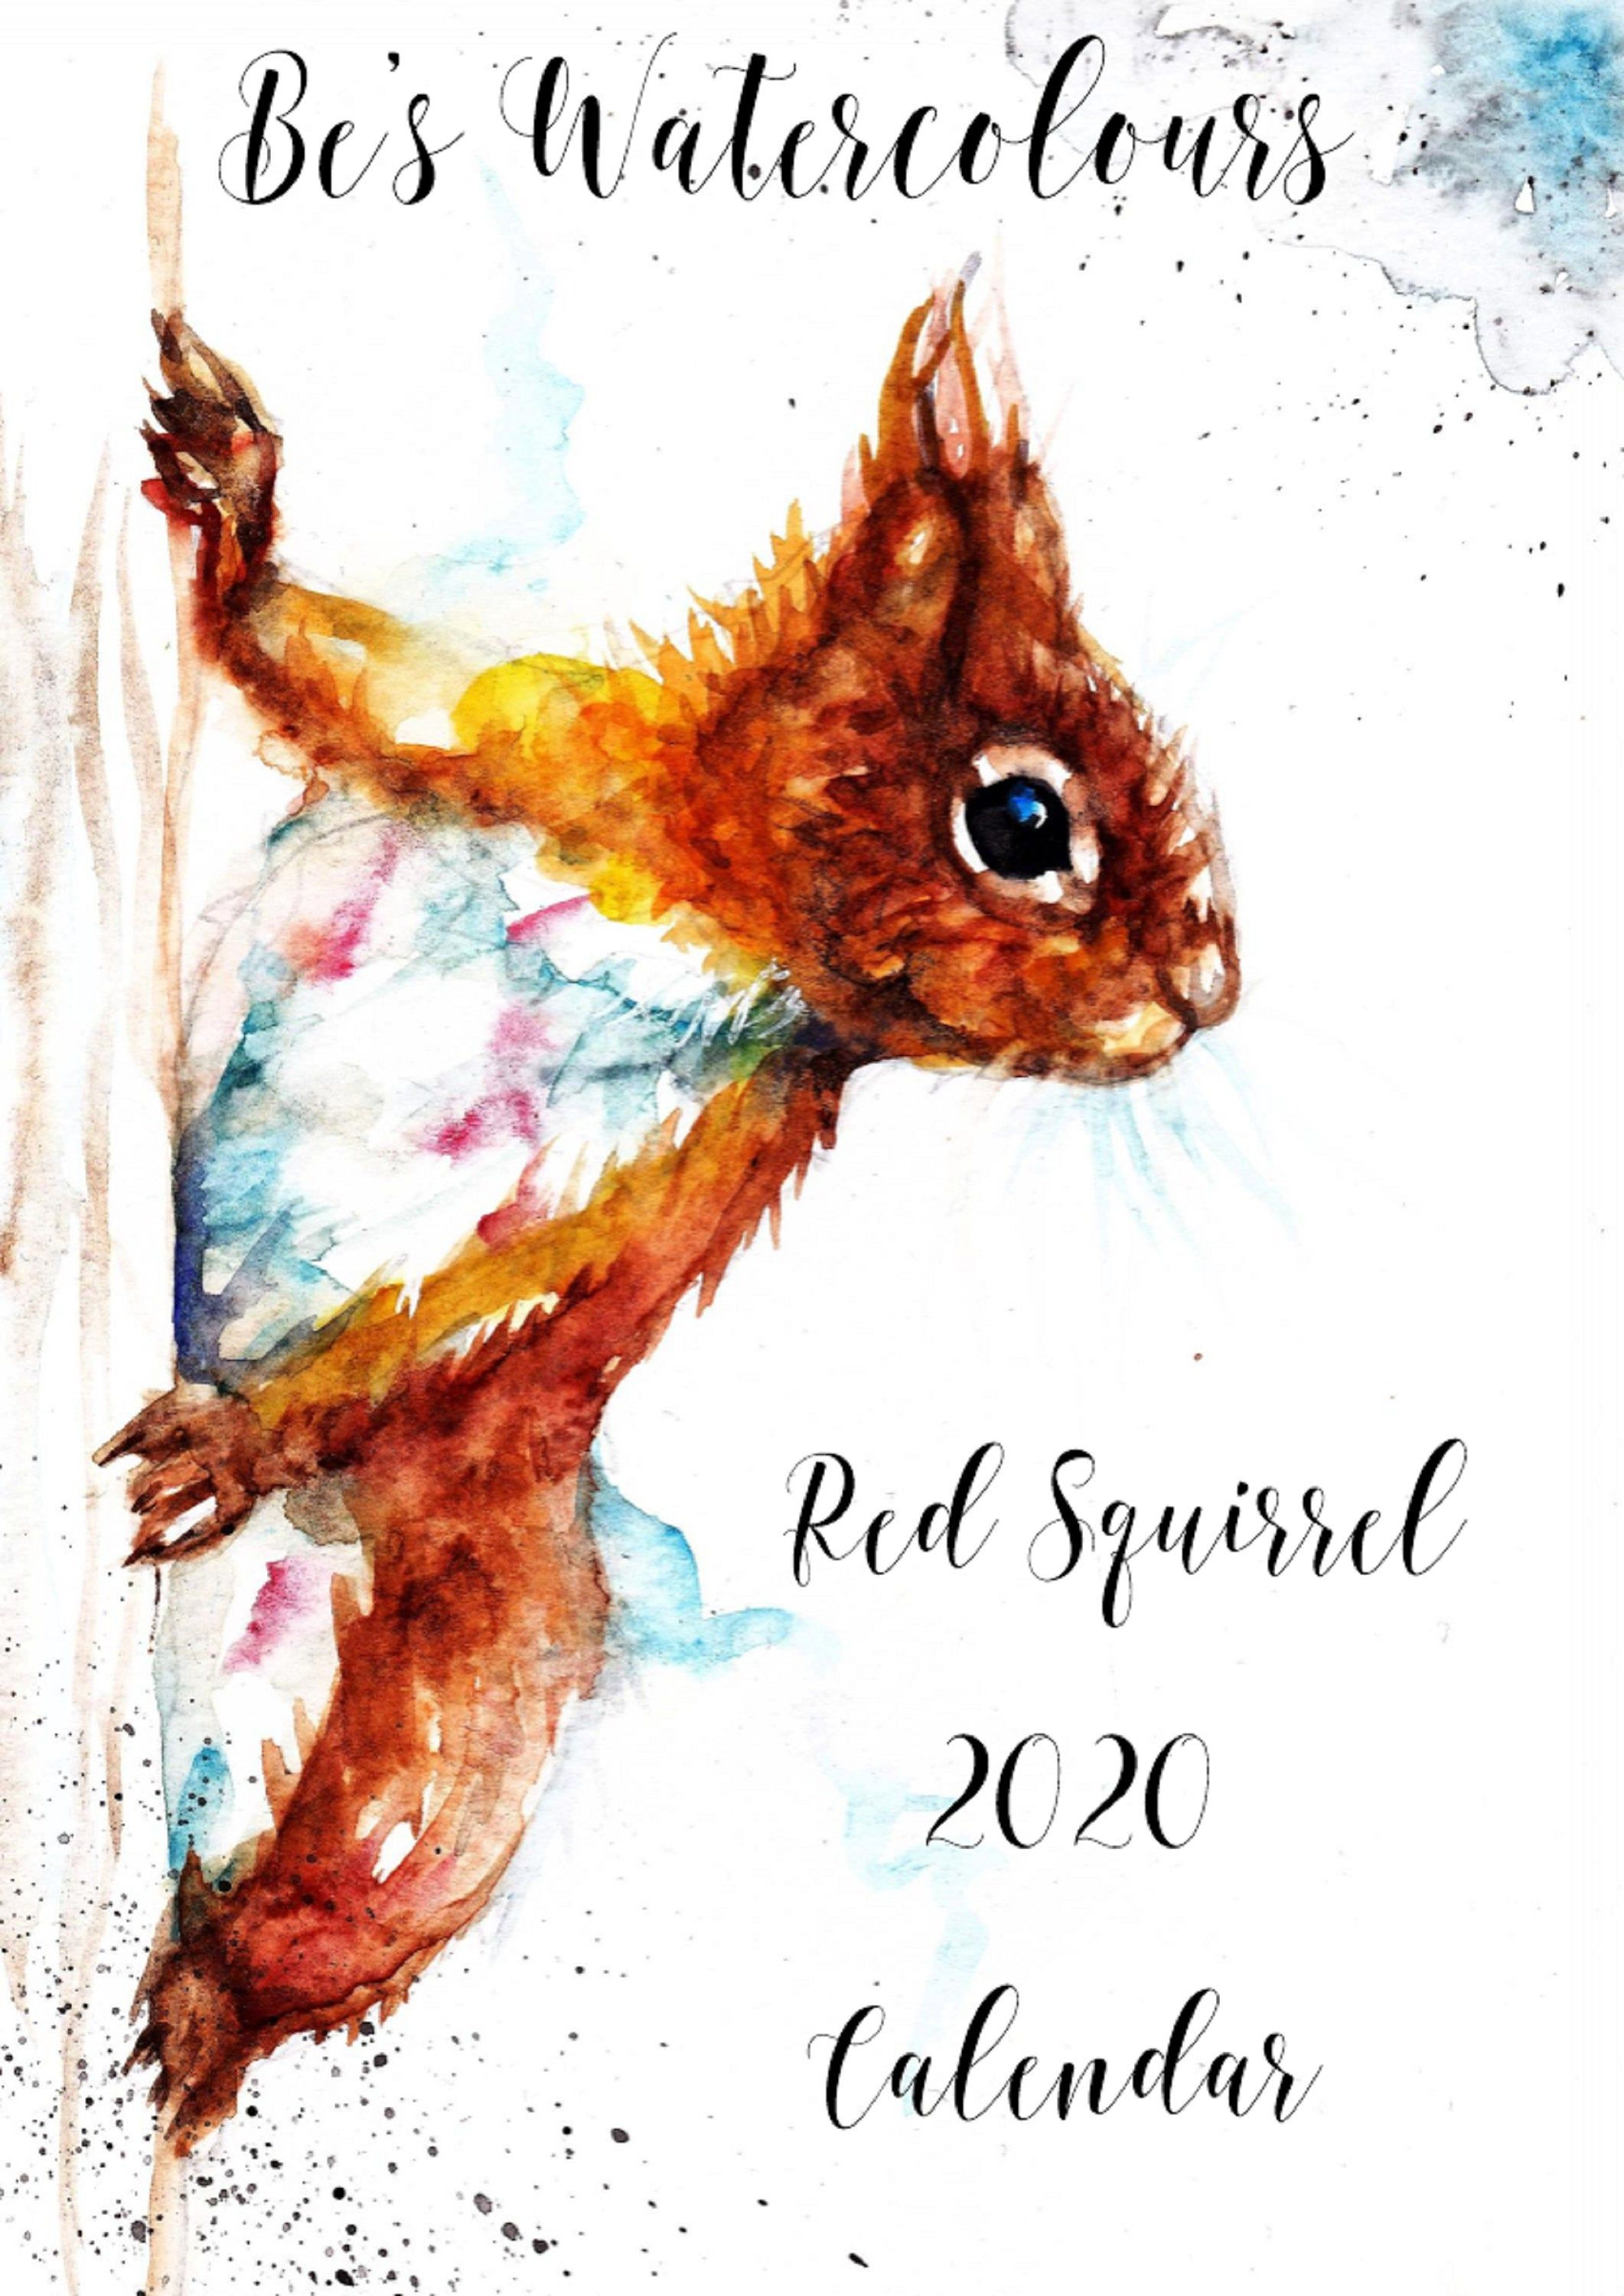 2020 Calendar Red Squirrel Watercolour 2020 Calendar A4 Calendar